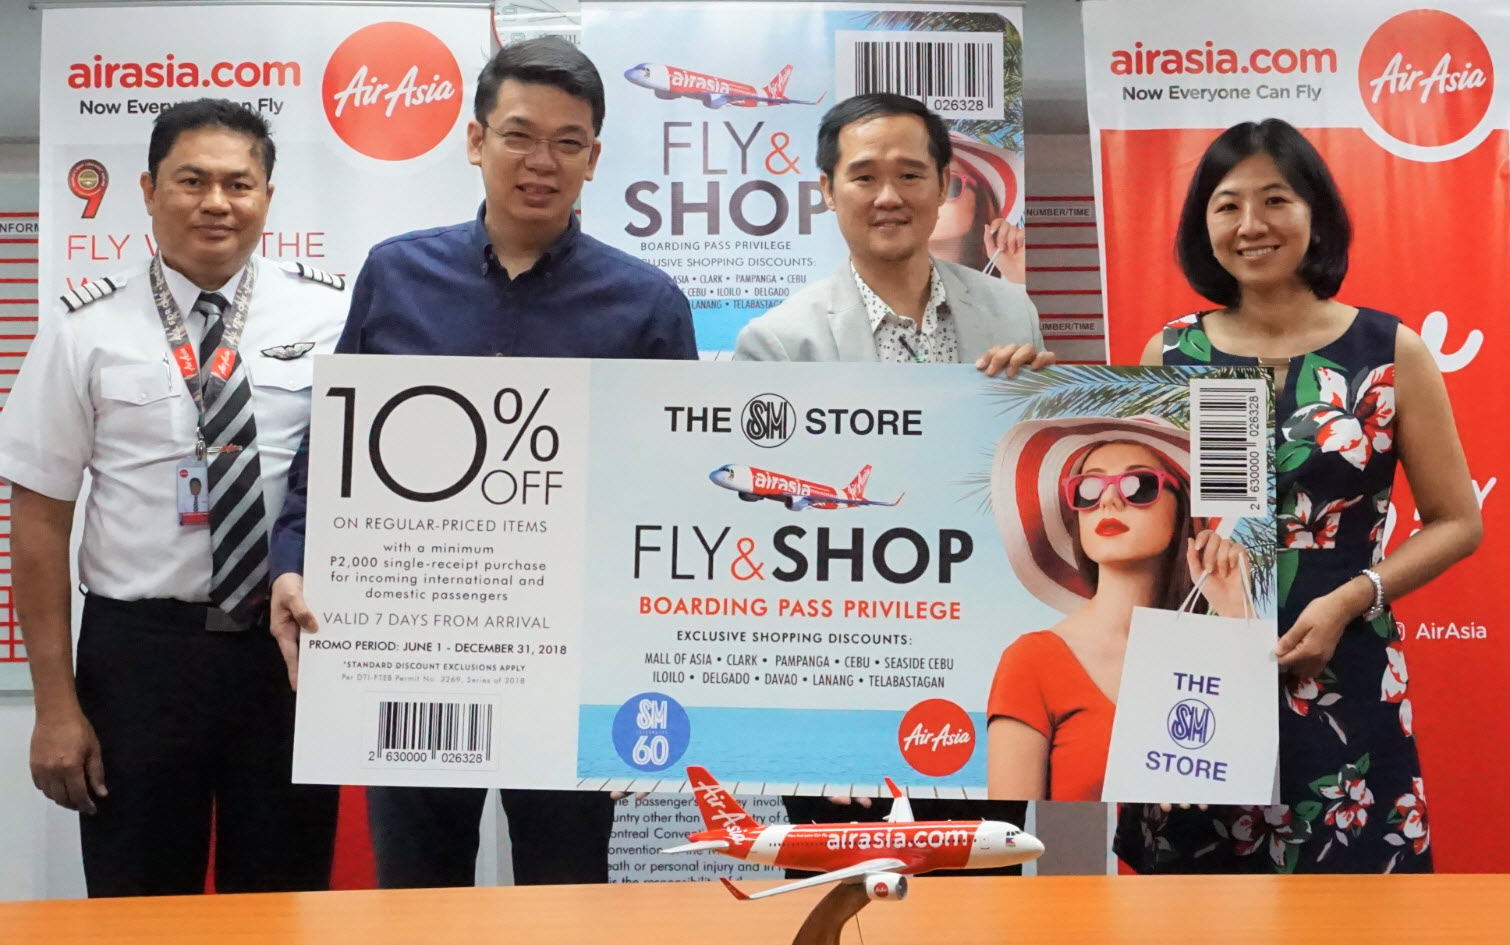 Airasia Guests Get Special Discounts At Sm Stores The Mermaid Travels Jakarta Singapore